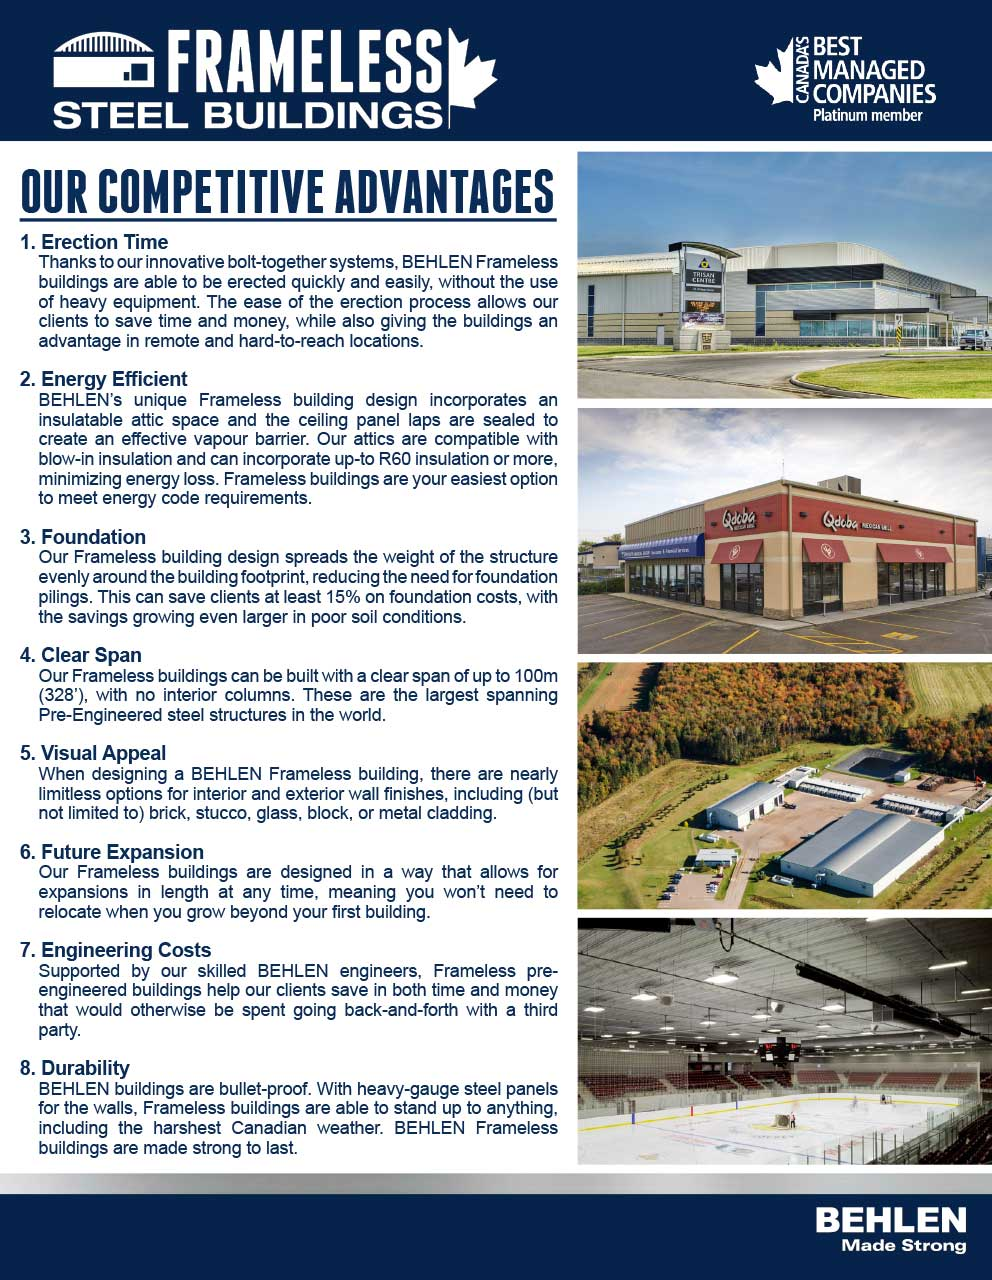 Behlen Industries - Frameless Competitive Advantages